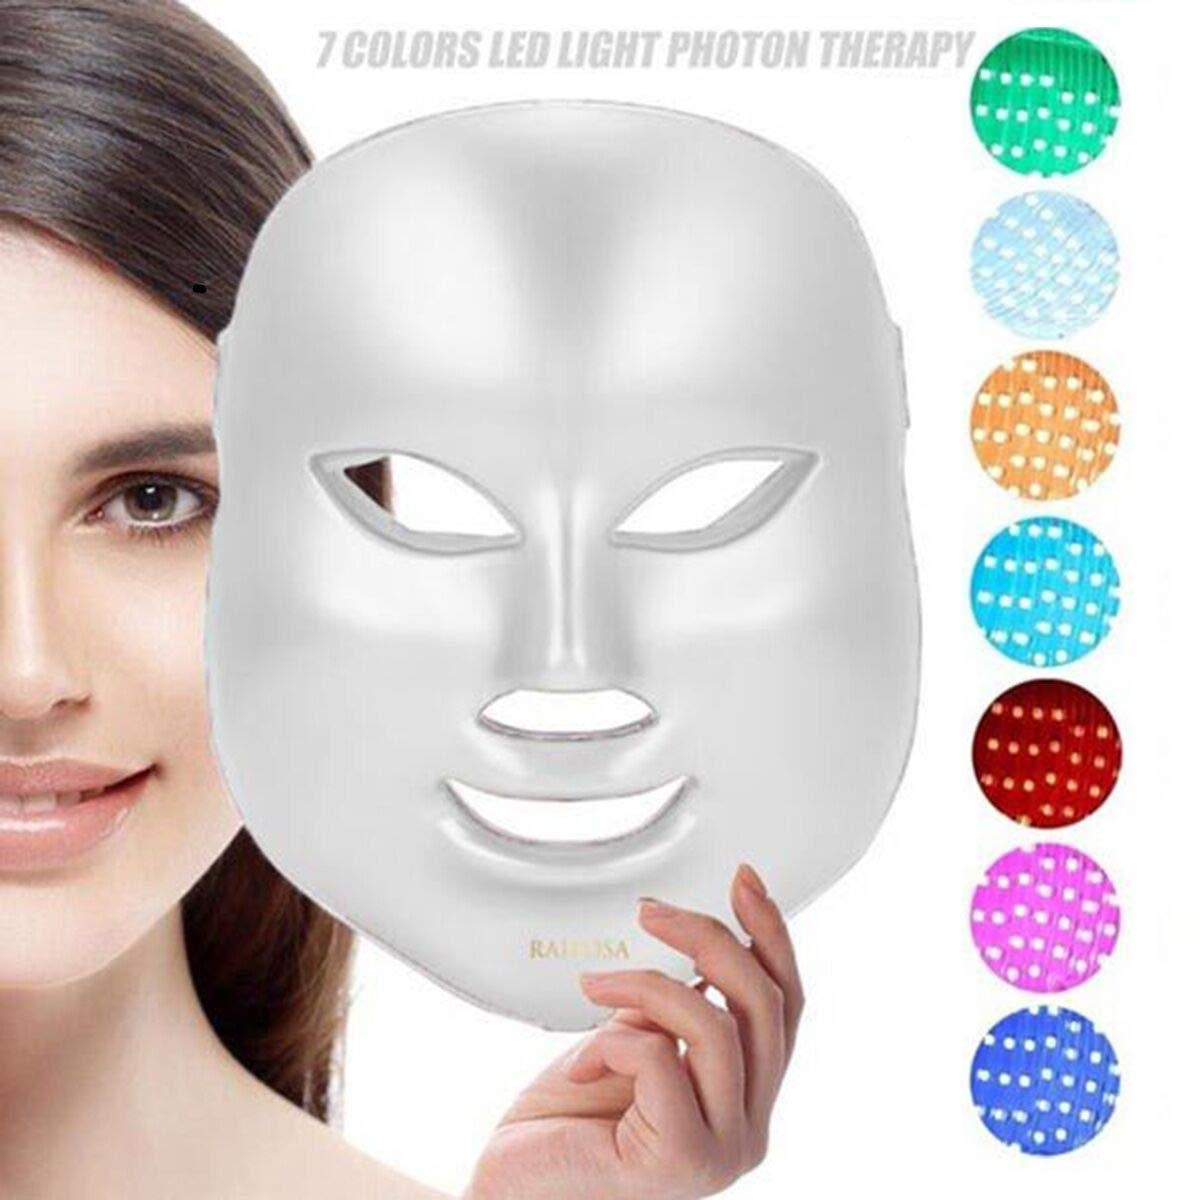 7 Color Facial Mask | Photon Face Skin Care System | Healthy Smooth Skin Rejuvenation | Anti-Aging, Tightening, Toning, Wrinkle Acne Treatment | Collagen Restoring & Whitening Device